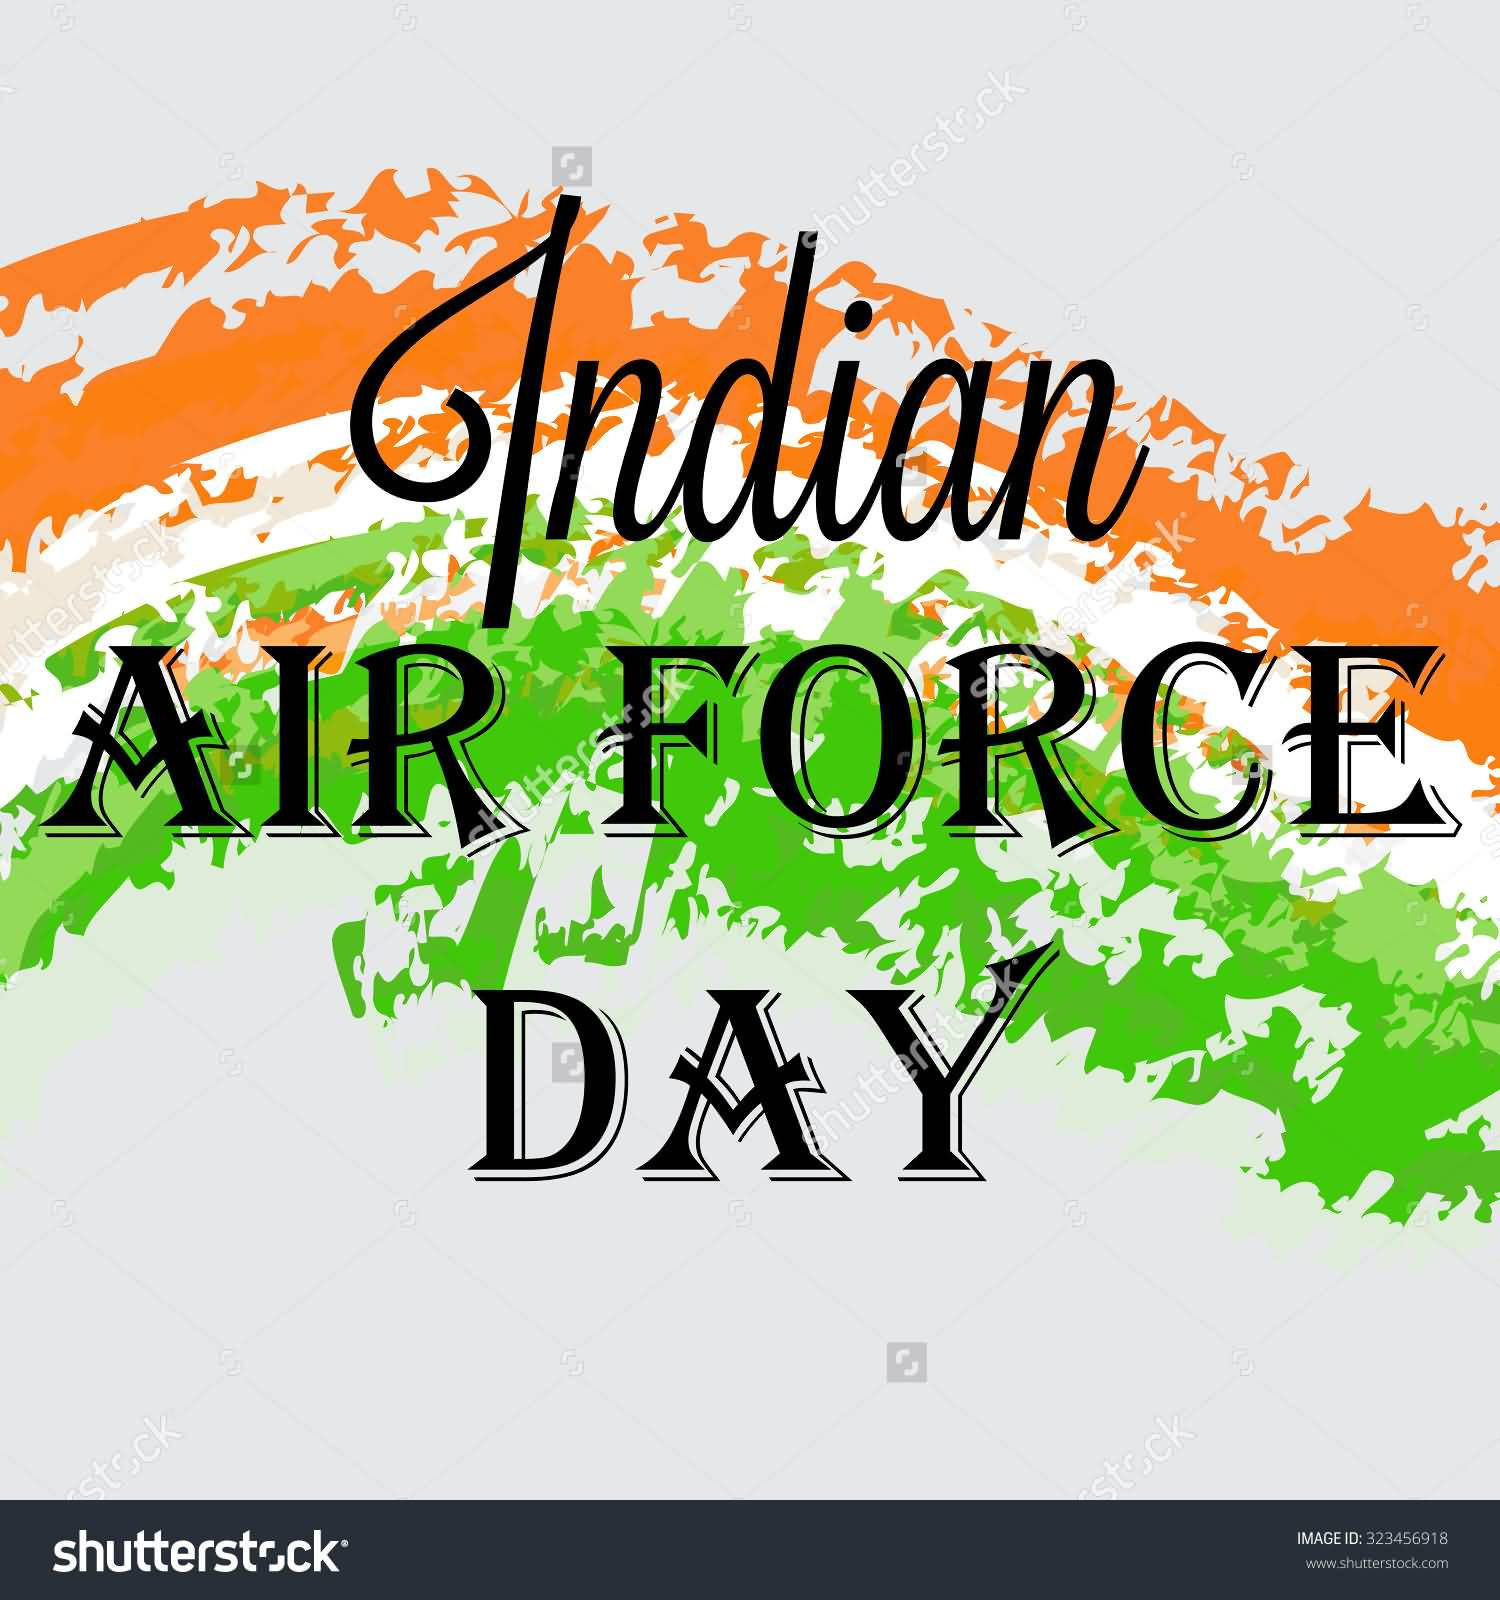 Image result for Images for INDIAN AIR FORCE DAY 2016.